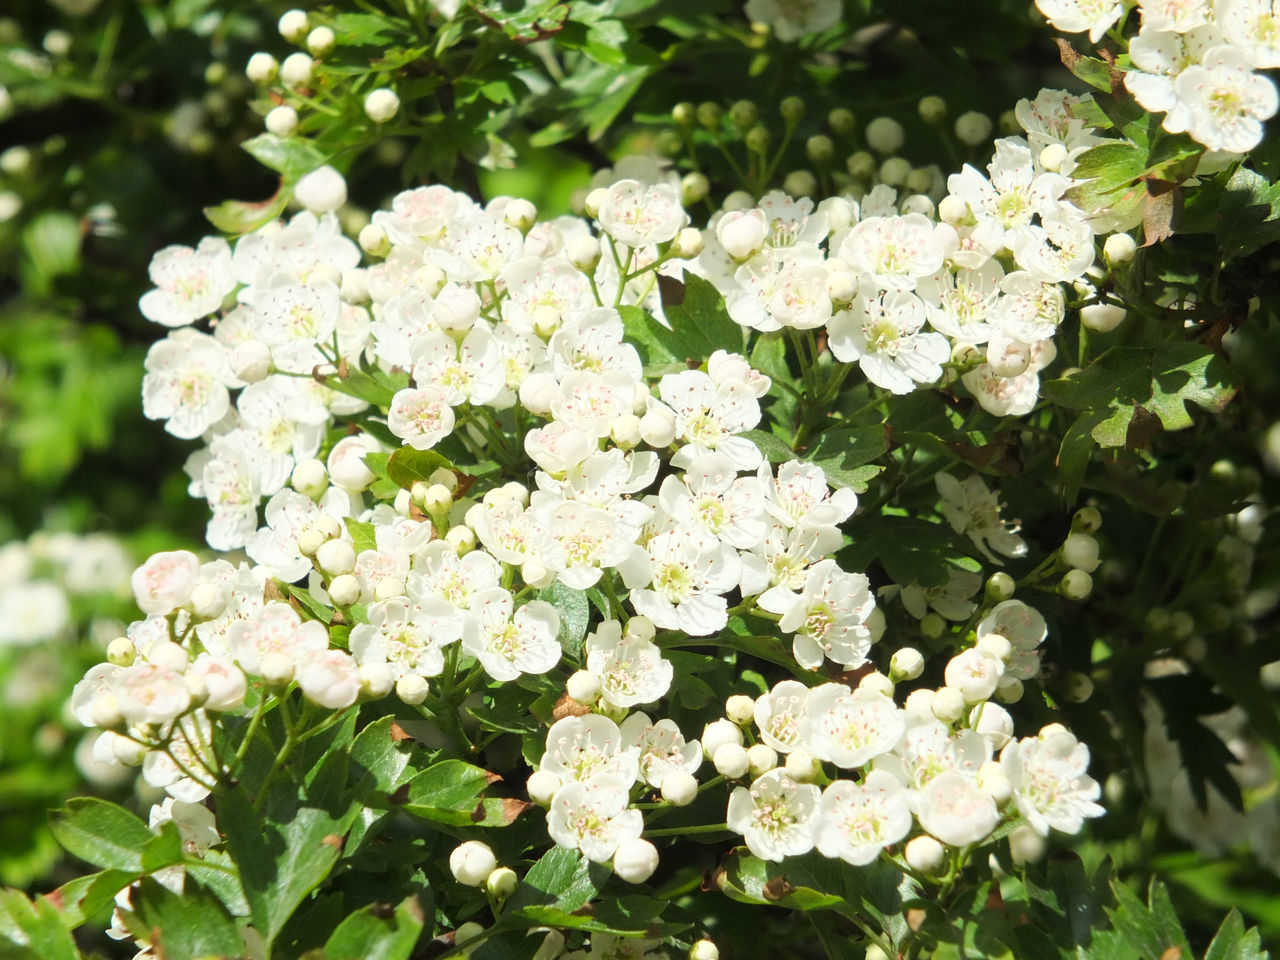 Beauty In Nature Blooming Blossom Close-up Day Flower Flower Head Fragility Freshness Growth Hawthorn Hawthorn Blossom Hydrangea Lilac Nature No People Outdoors Petal White Color